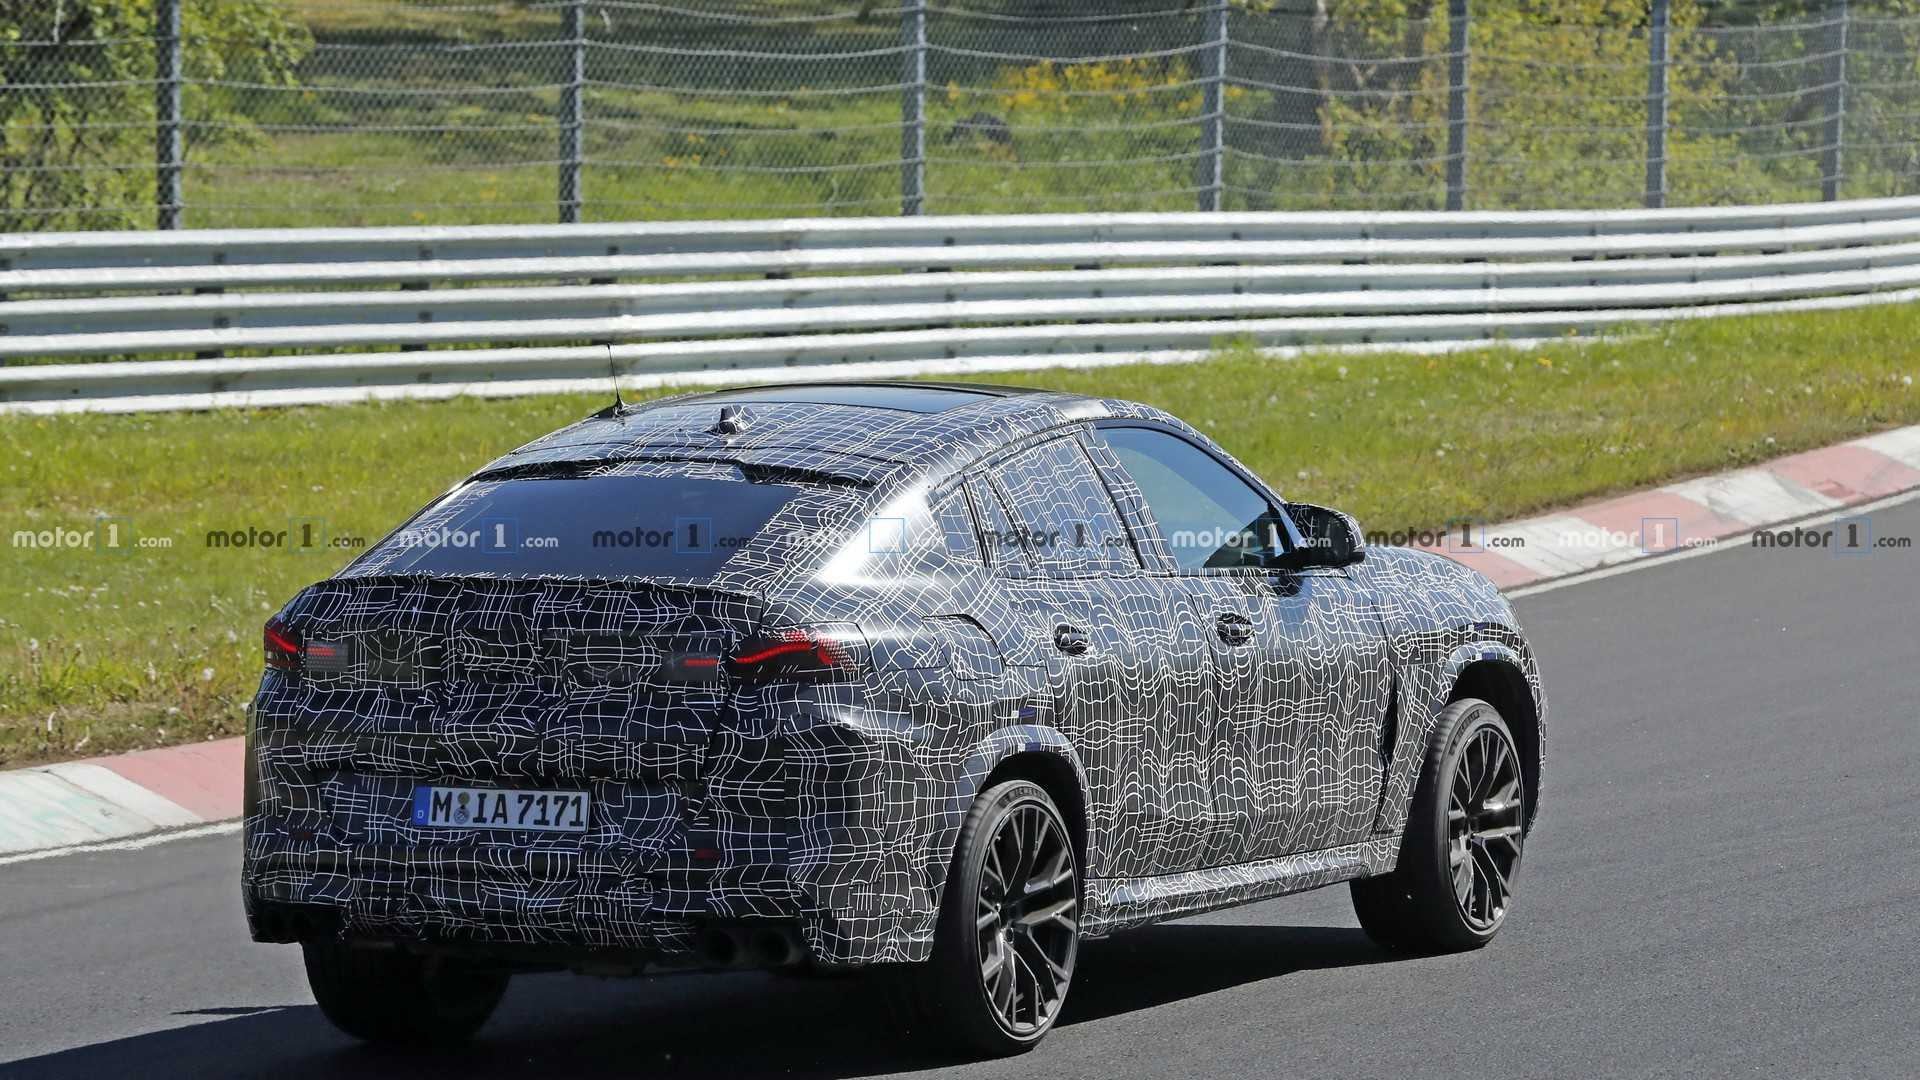 2019 - [BMW] X6 III (G06) - Page 5 New-bmw-x6-m-spy-photo